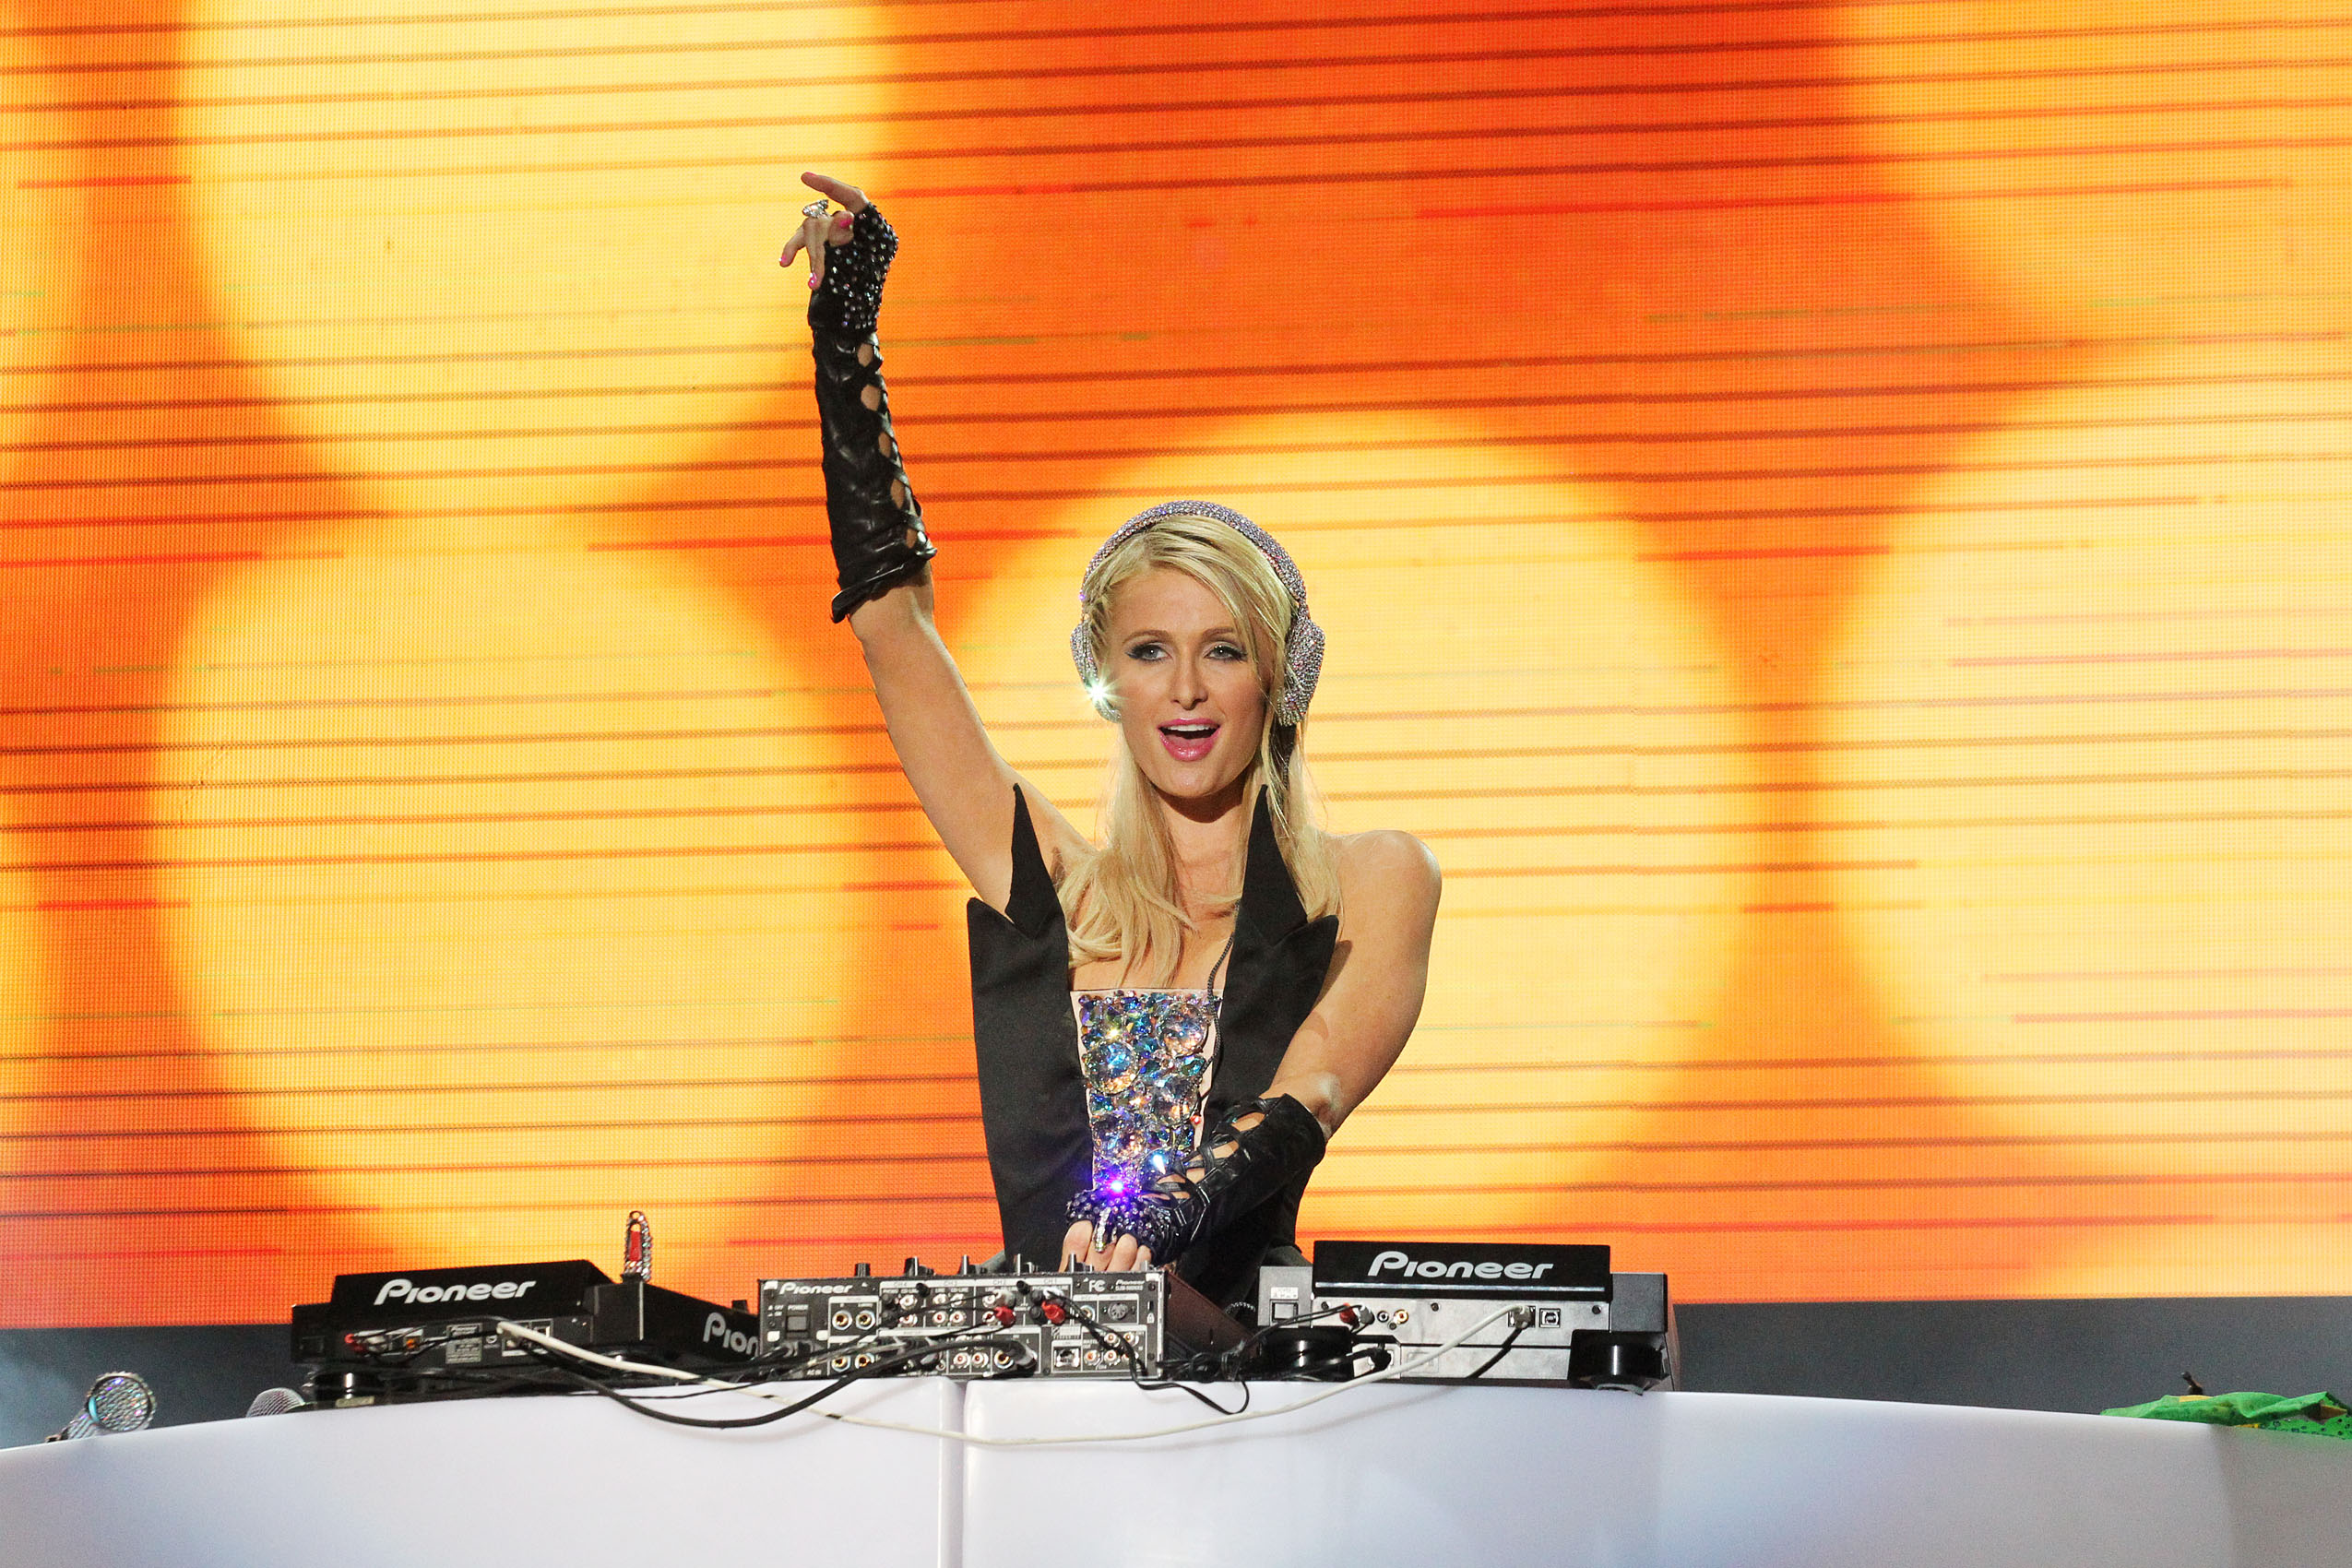 Paris Hilton performed her DJ debut at the Pop Music Festival in Sao Paulo, Brazil, in front of thousands of ecstatic fans. She took the stage for an hour and clearly loved the attention and was totally at home on stage. The end of the show was capped with a pyrotechnic display, and Paris went down to meet fans who crowded the stage area to get a chance to meet and greet her. Pictured: Paris Hilton Ref: SPL409588 240612 Picture by: Splash News Splash News and Pictures Los Angeles: 310-821-2666 New York: 212-619-2666 London: 870-934-2666 photodesk@splashnews.com